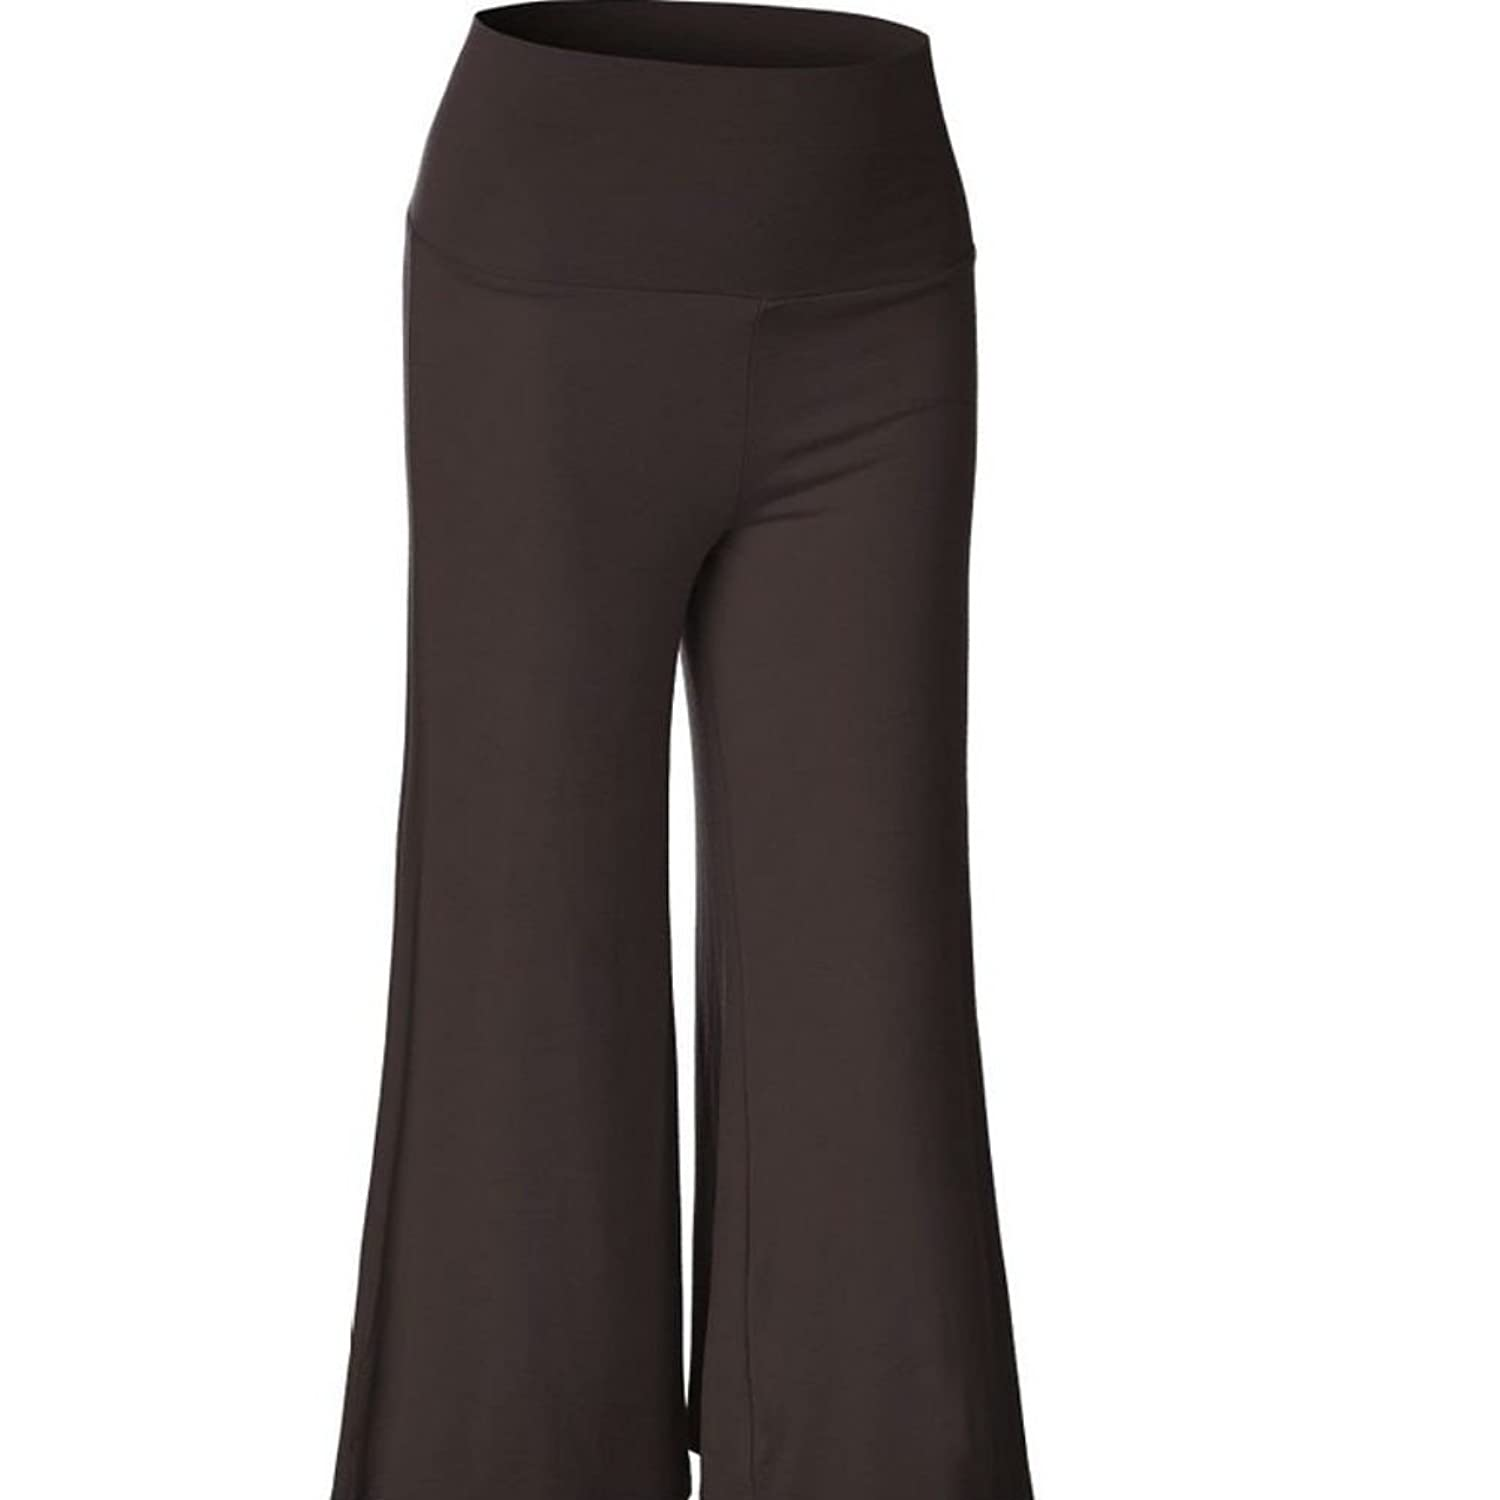 9c1585e6f8a hot sale Shinieny Women s High Waist Wide Leg Plus Size Loose Fit Solid  Casual Flare Pants